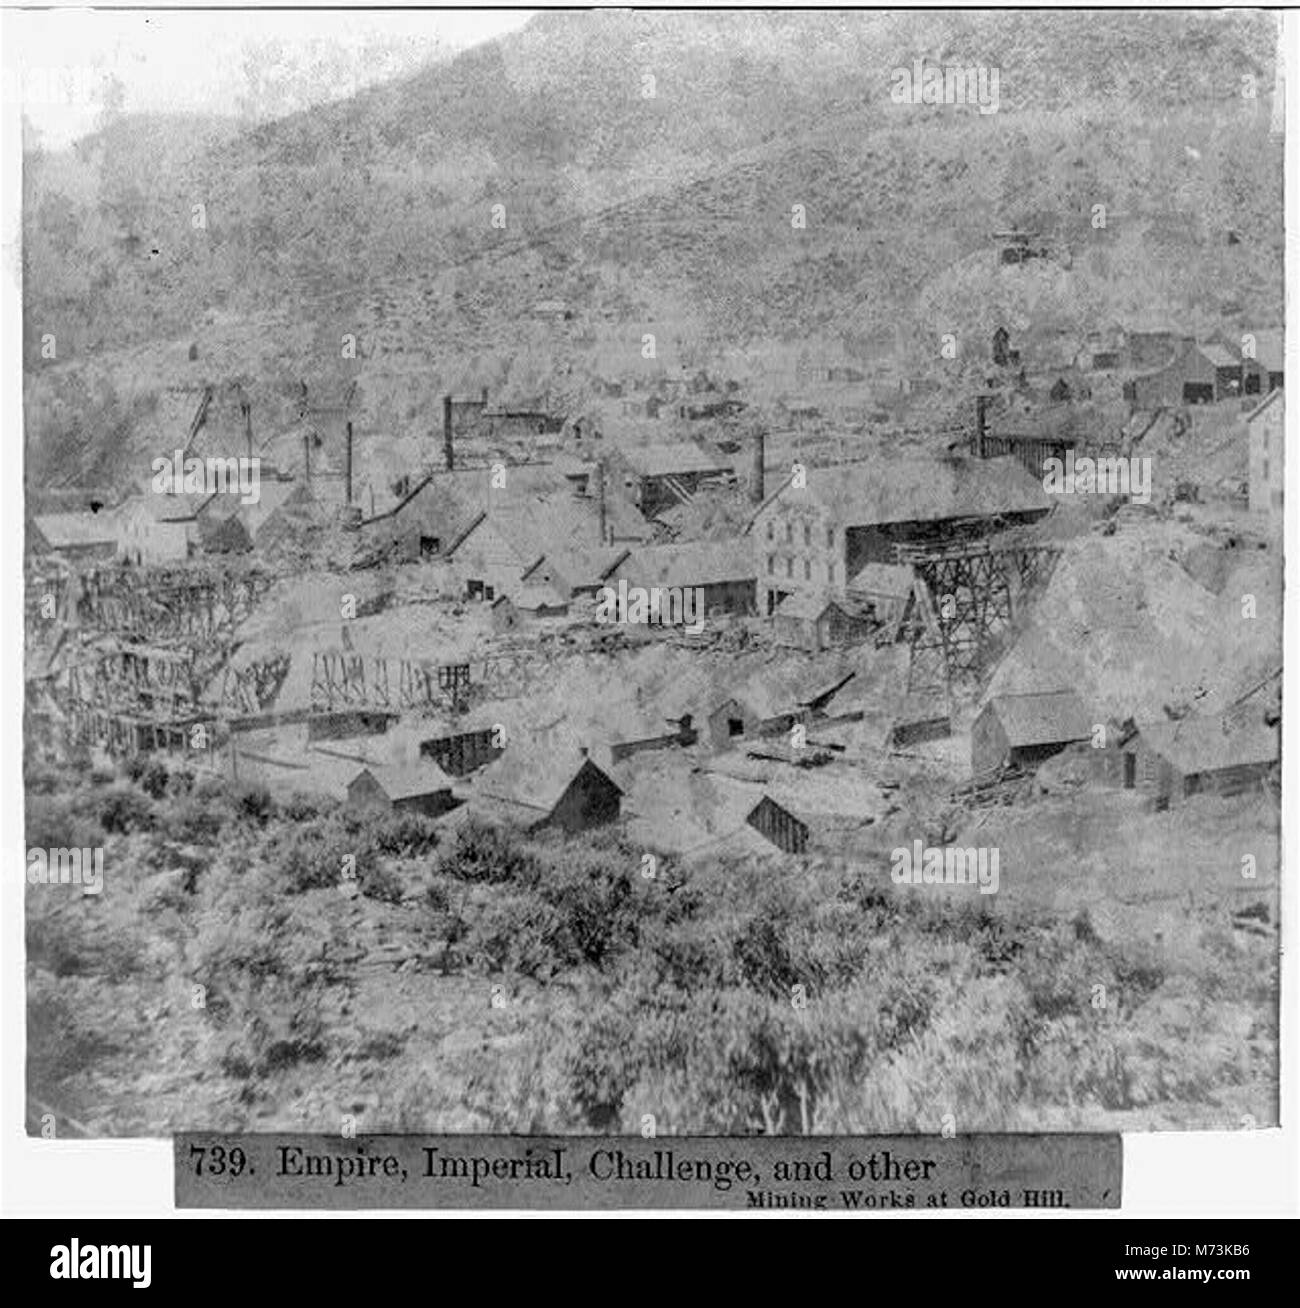 Empire, Imperial, Challenge, and other Mining Works at Gold Hill LCCN2002723114 - Stock Image